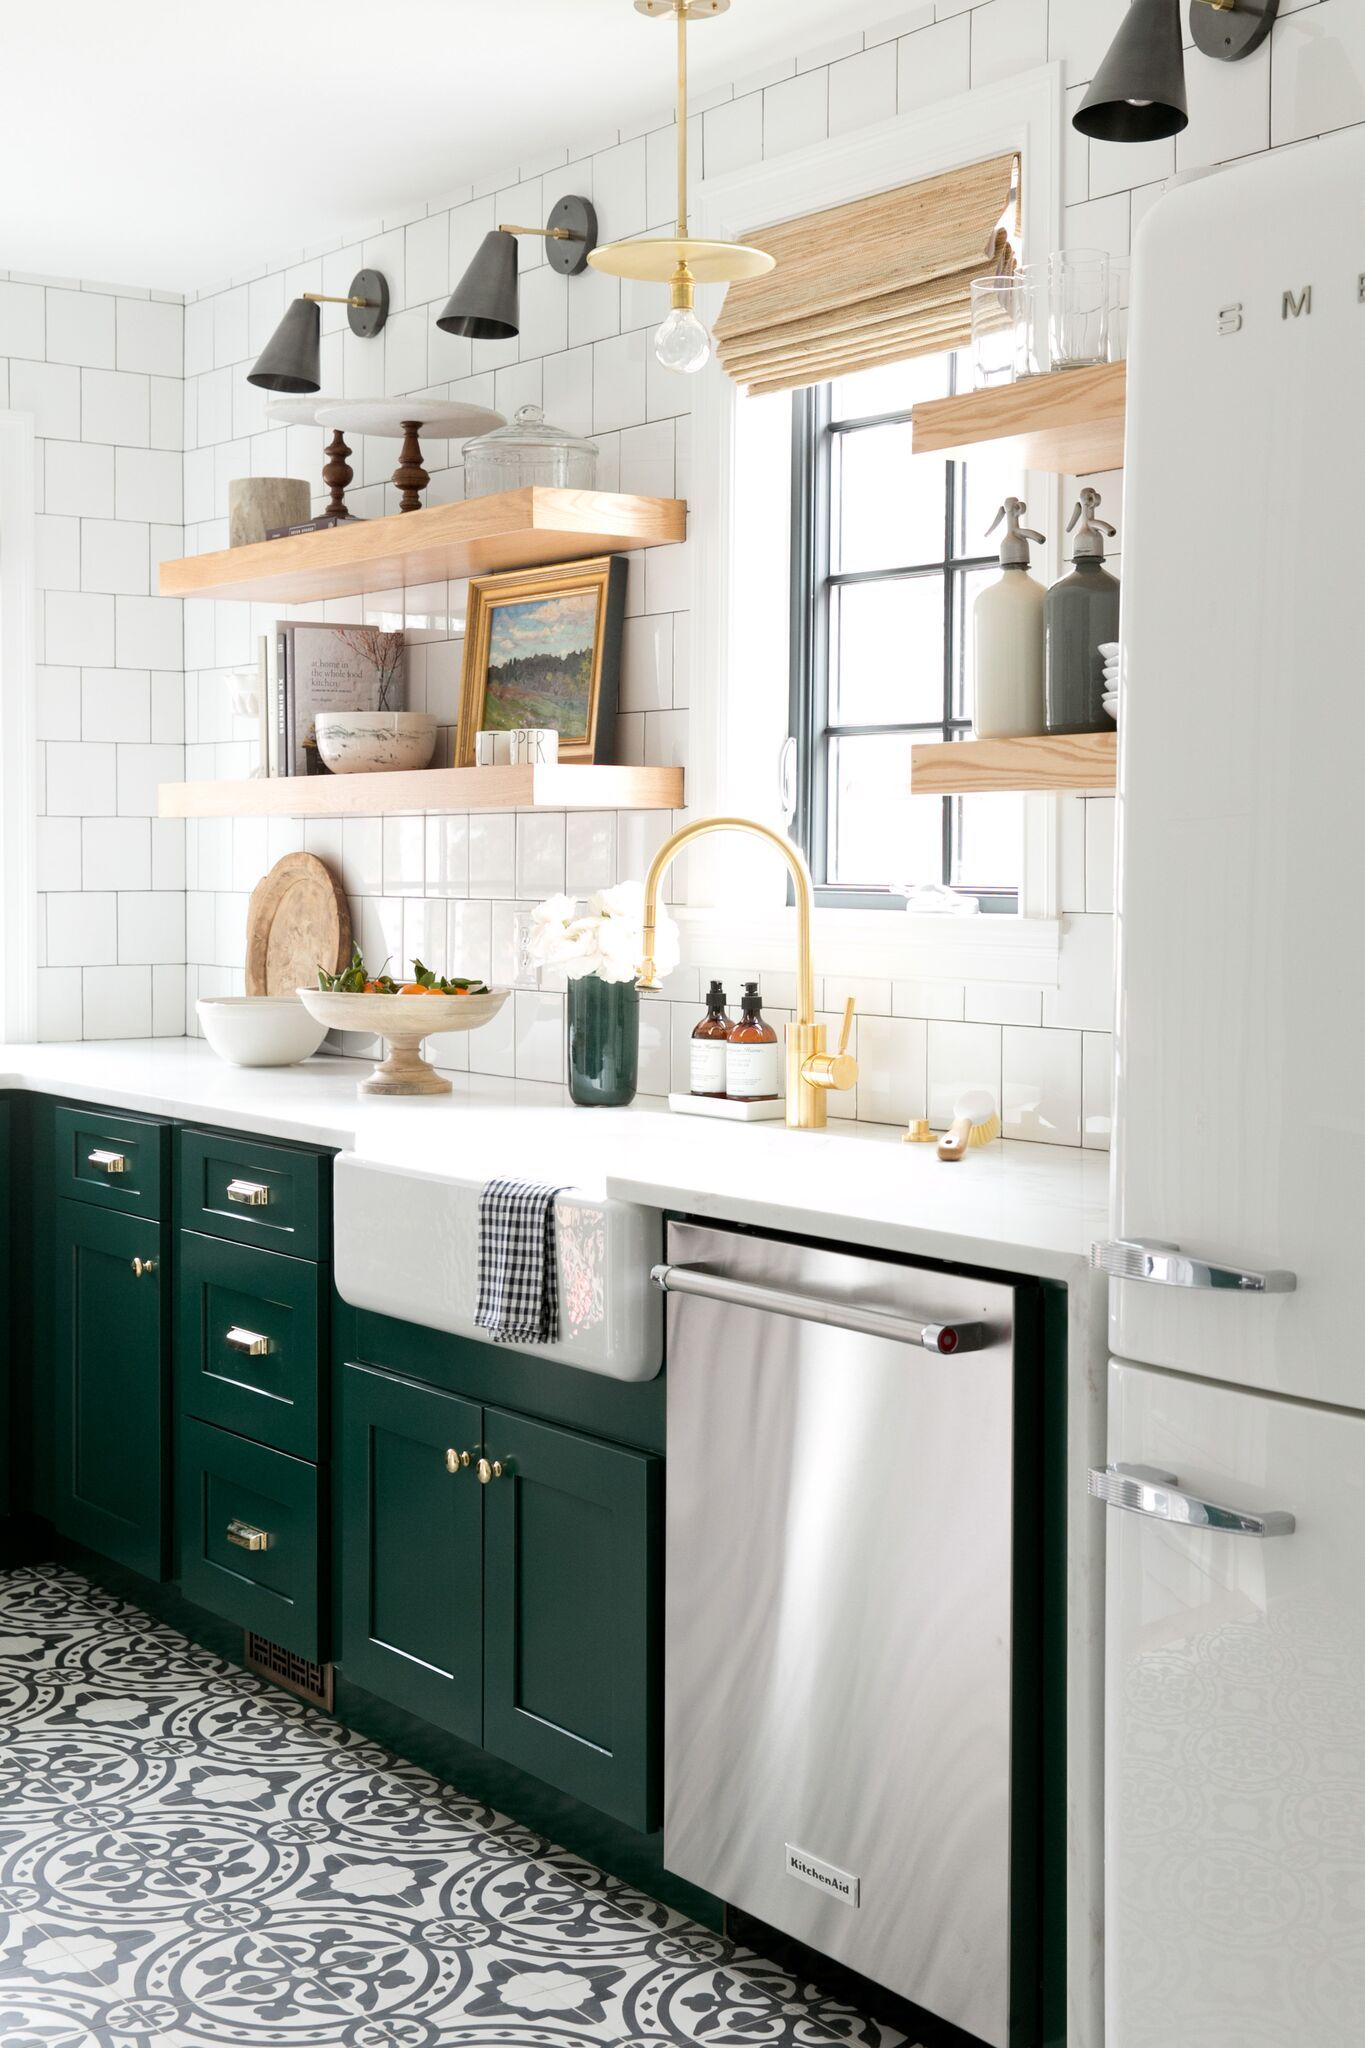 Modern vintage kitchen with cabinets in benjamin moores forest green open shelving and cement tile